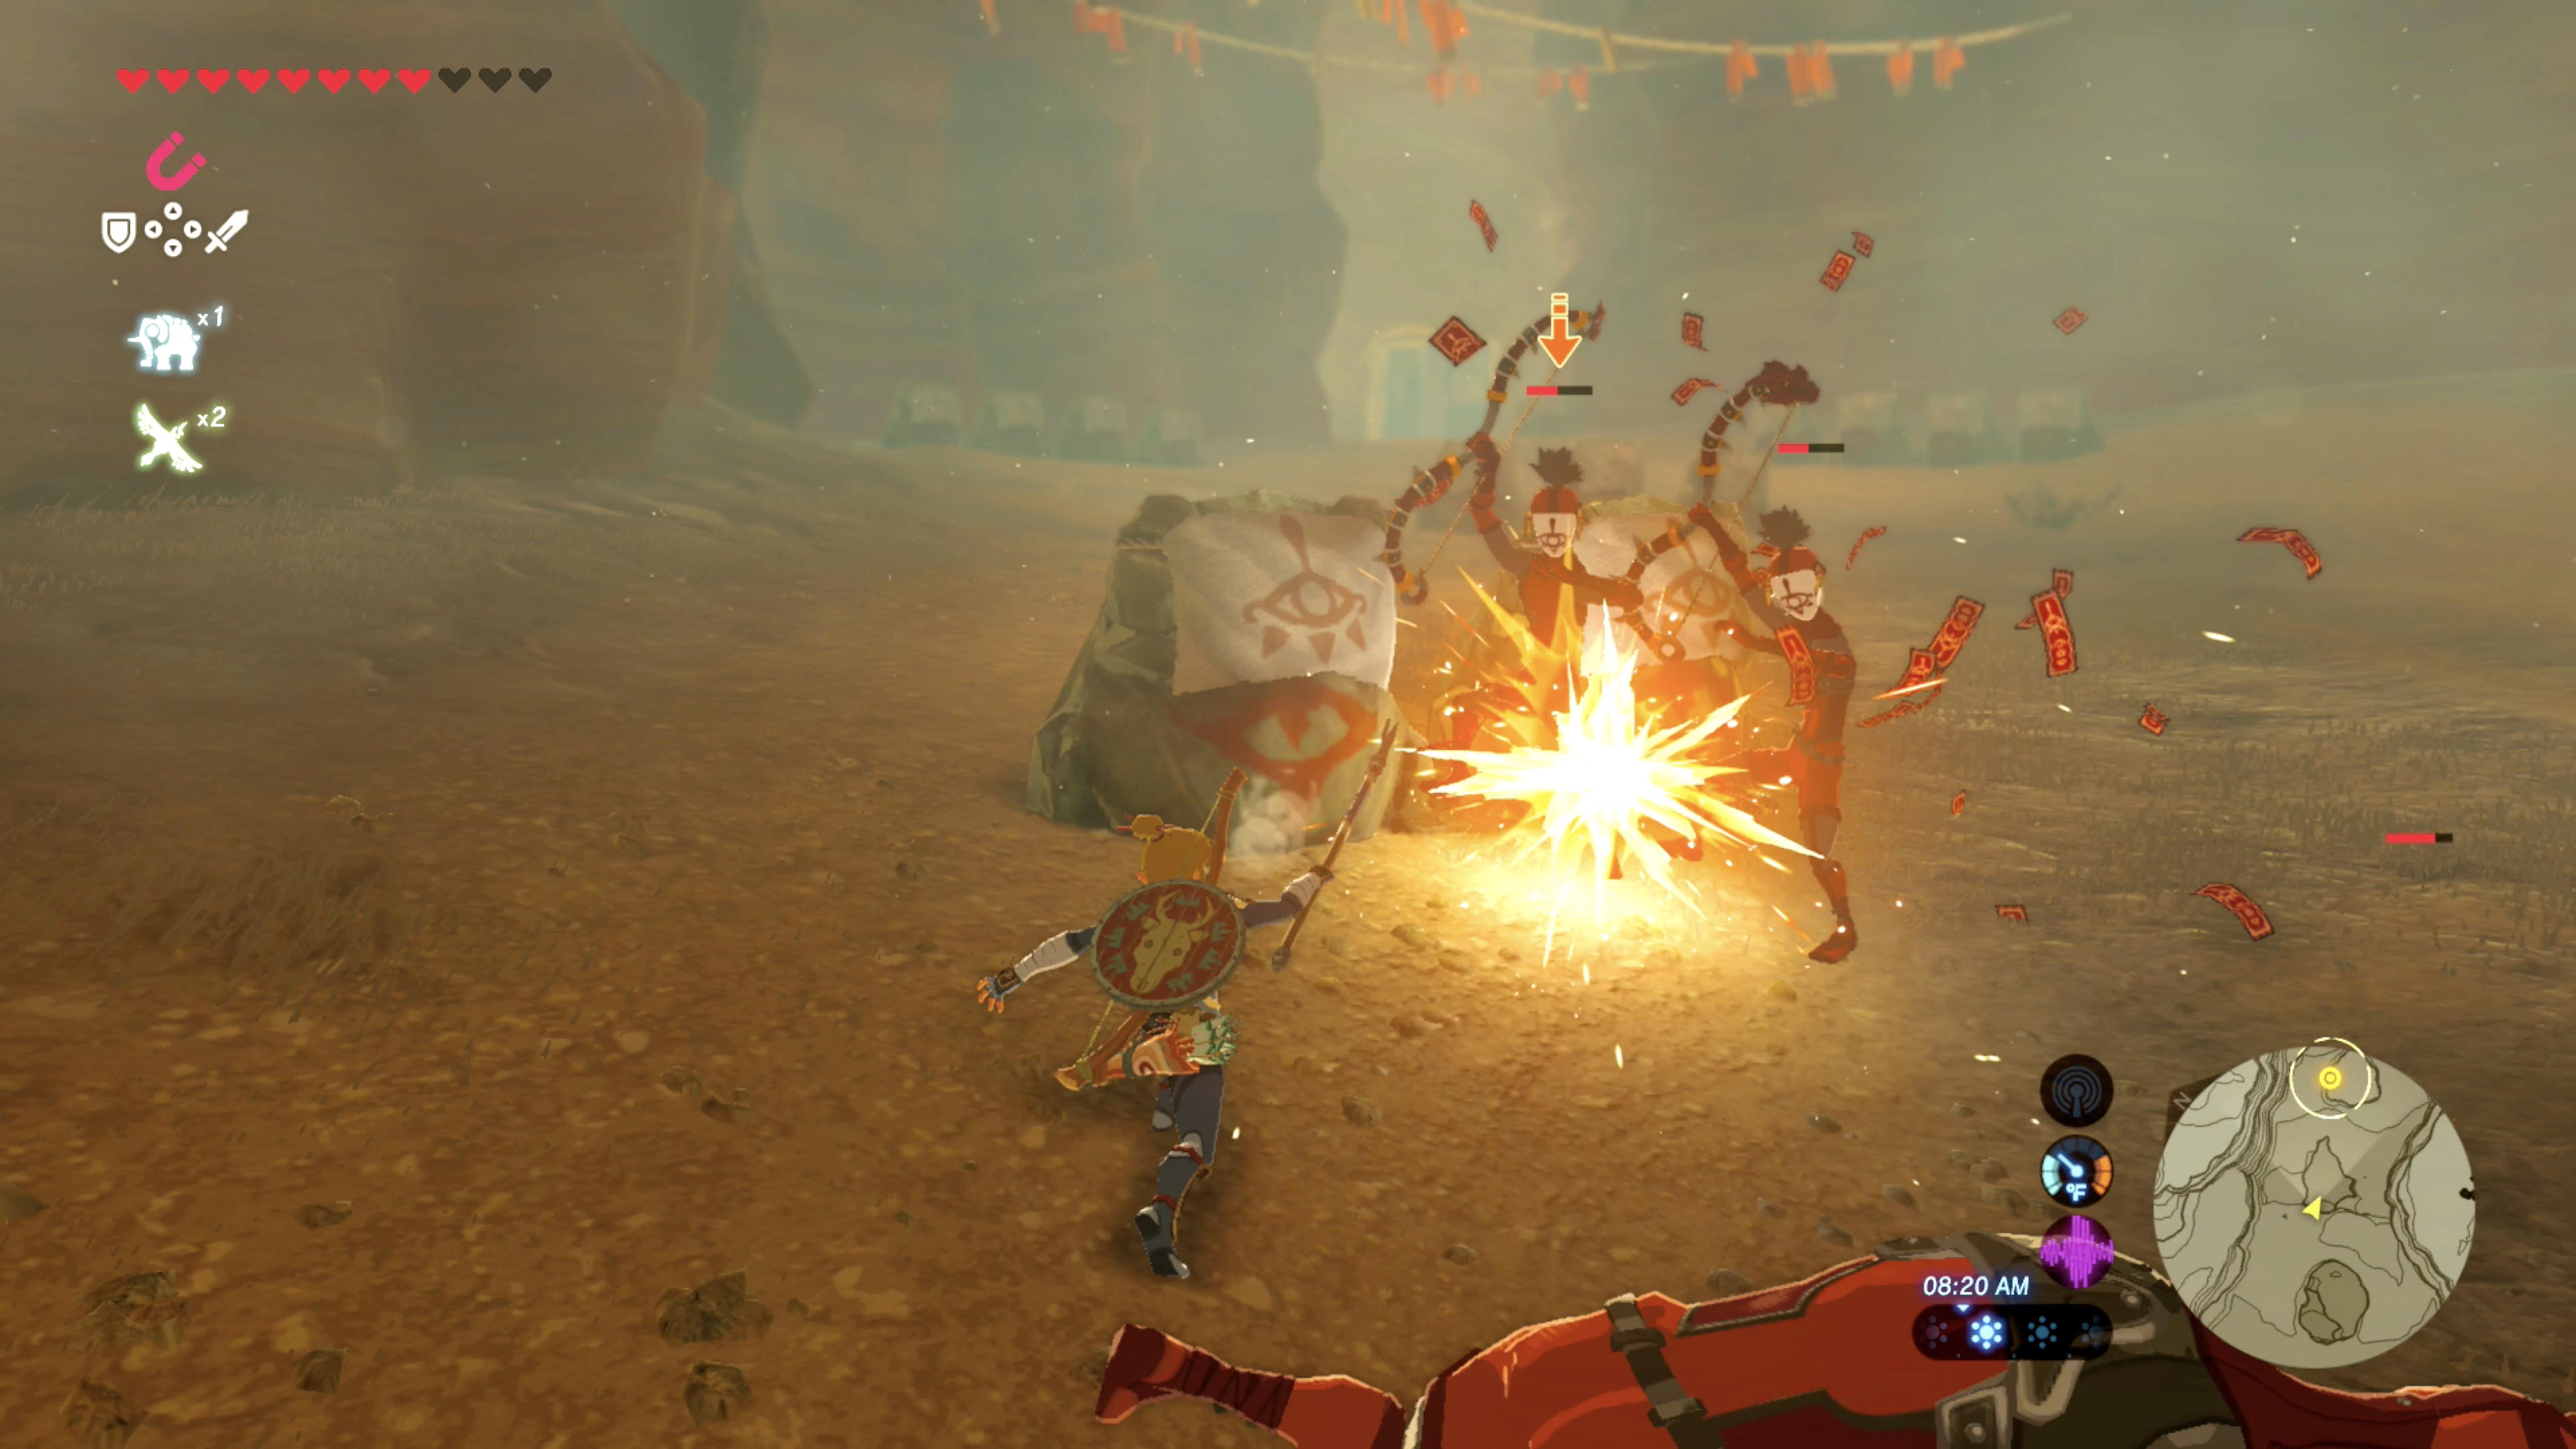 Gerudo Town Breath Of The Wild >> The Legend of Zelda: Breath of the Wild - 'Divine Beast Vah Naboris' main quest guide and ...